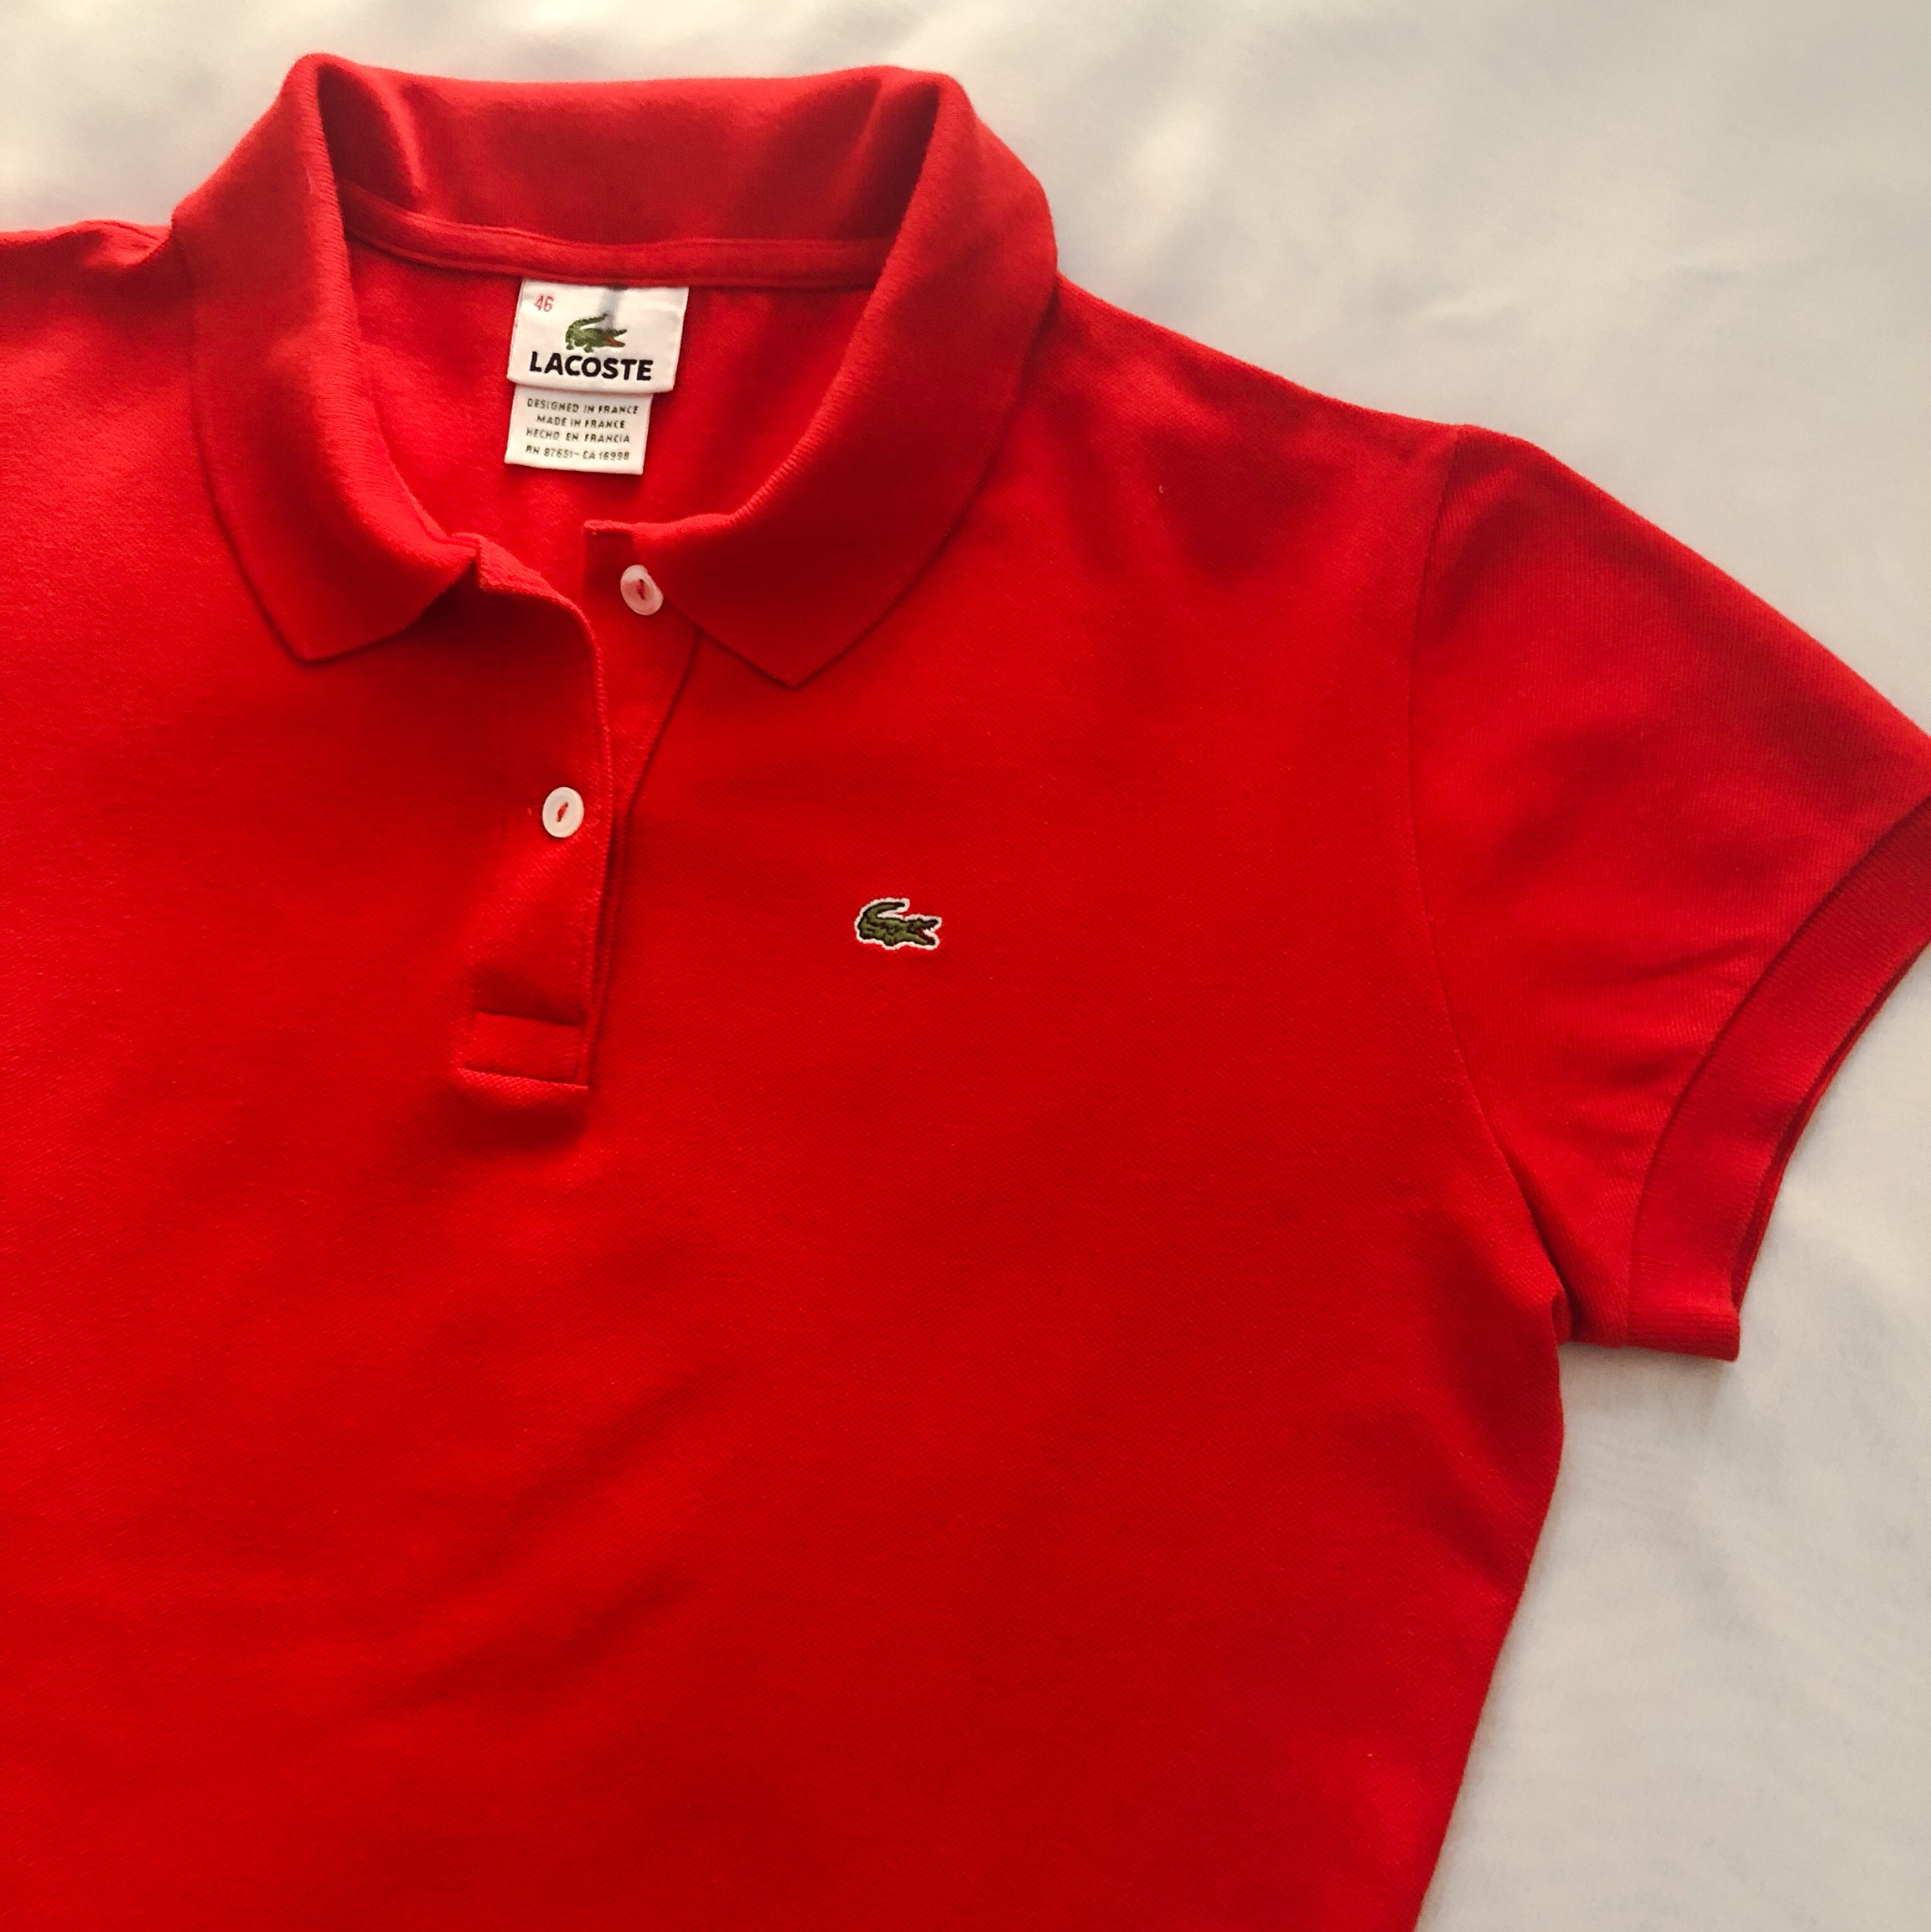 Imperial PoloColor Classic Pique RedDepop Lacoste Fit PvymNO8nw0